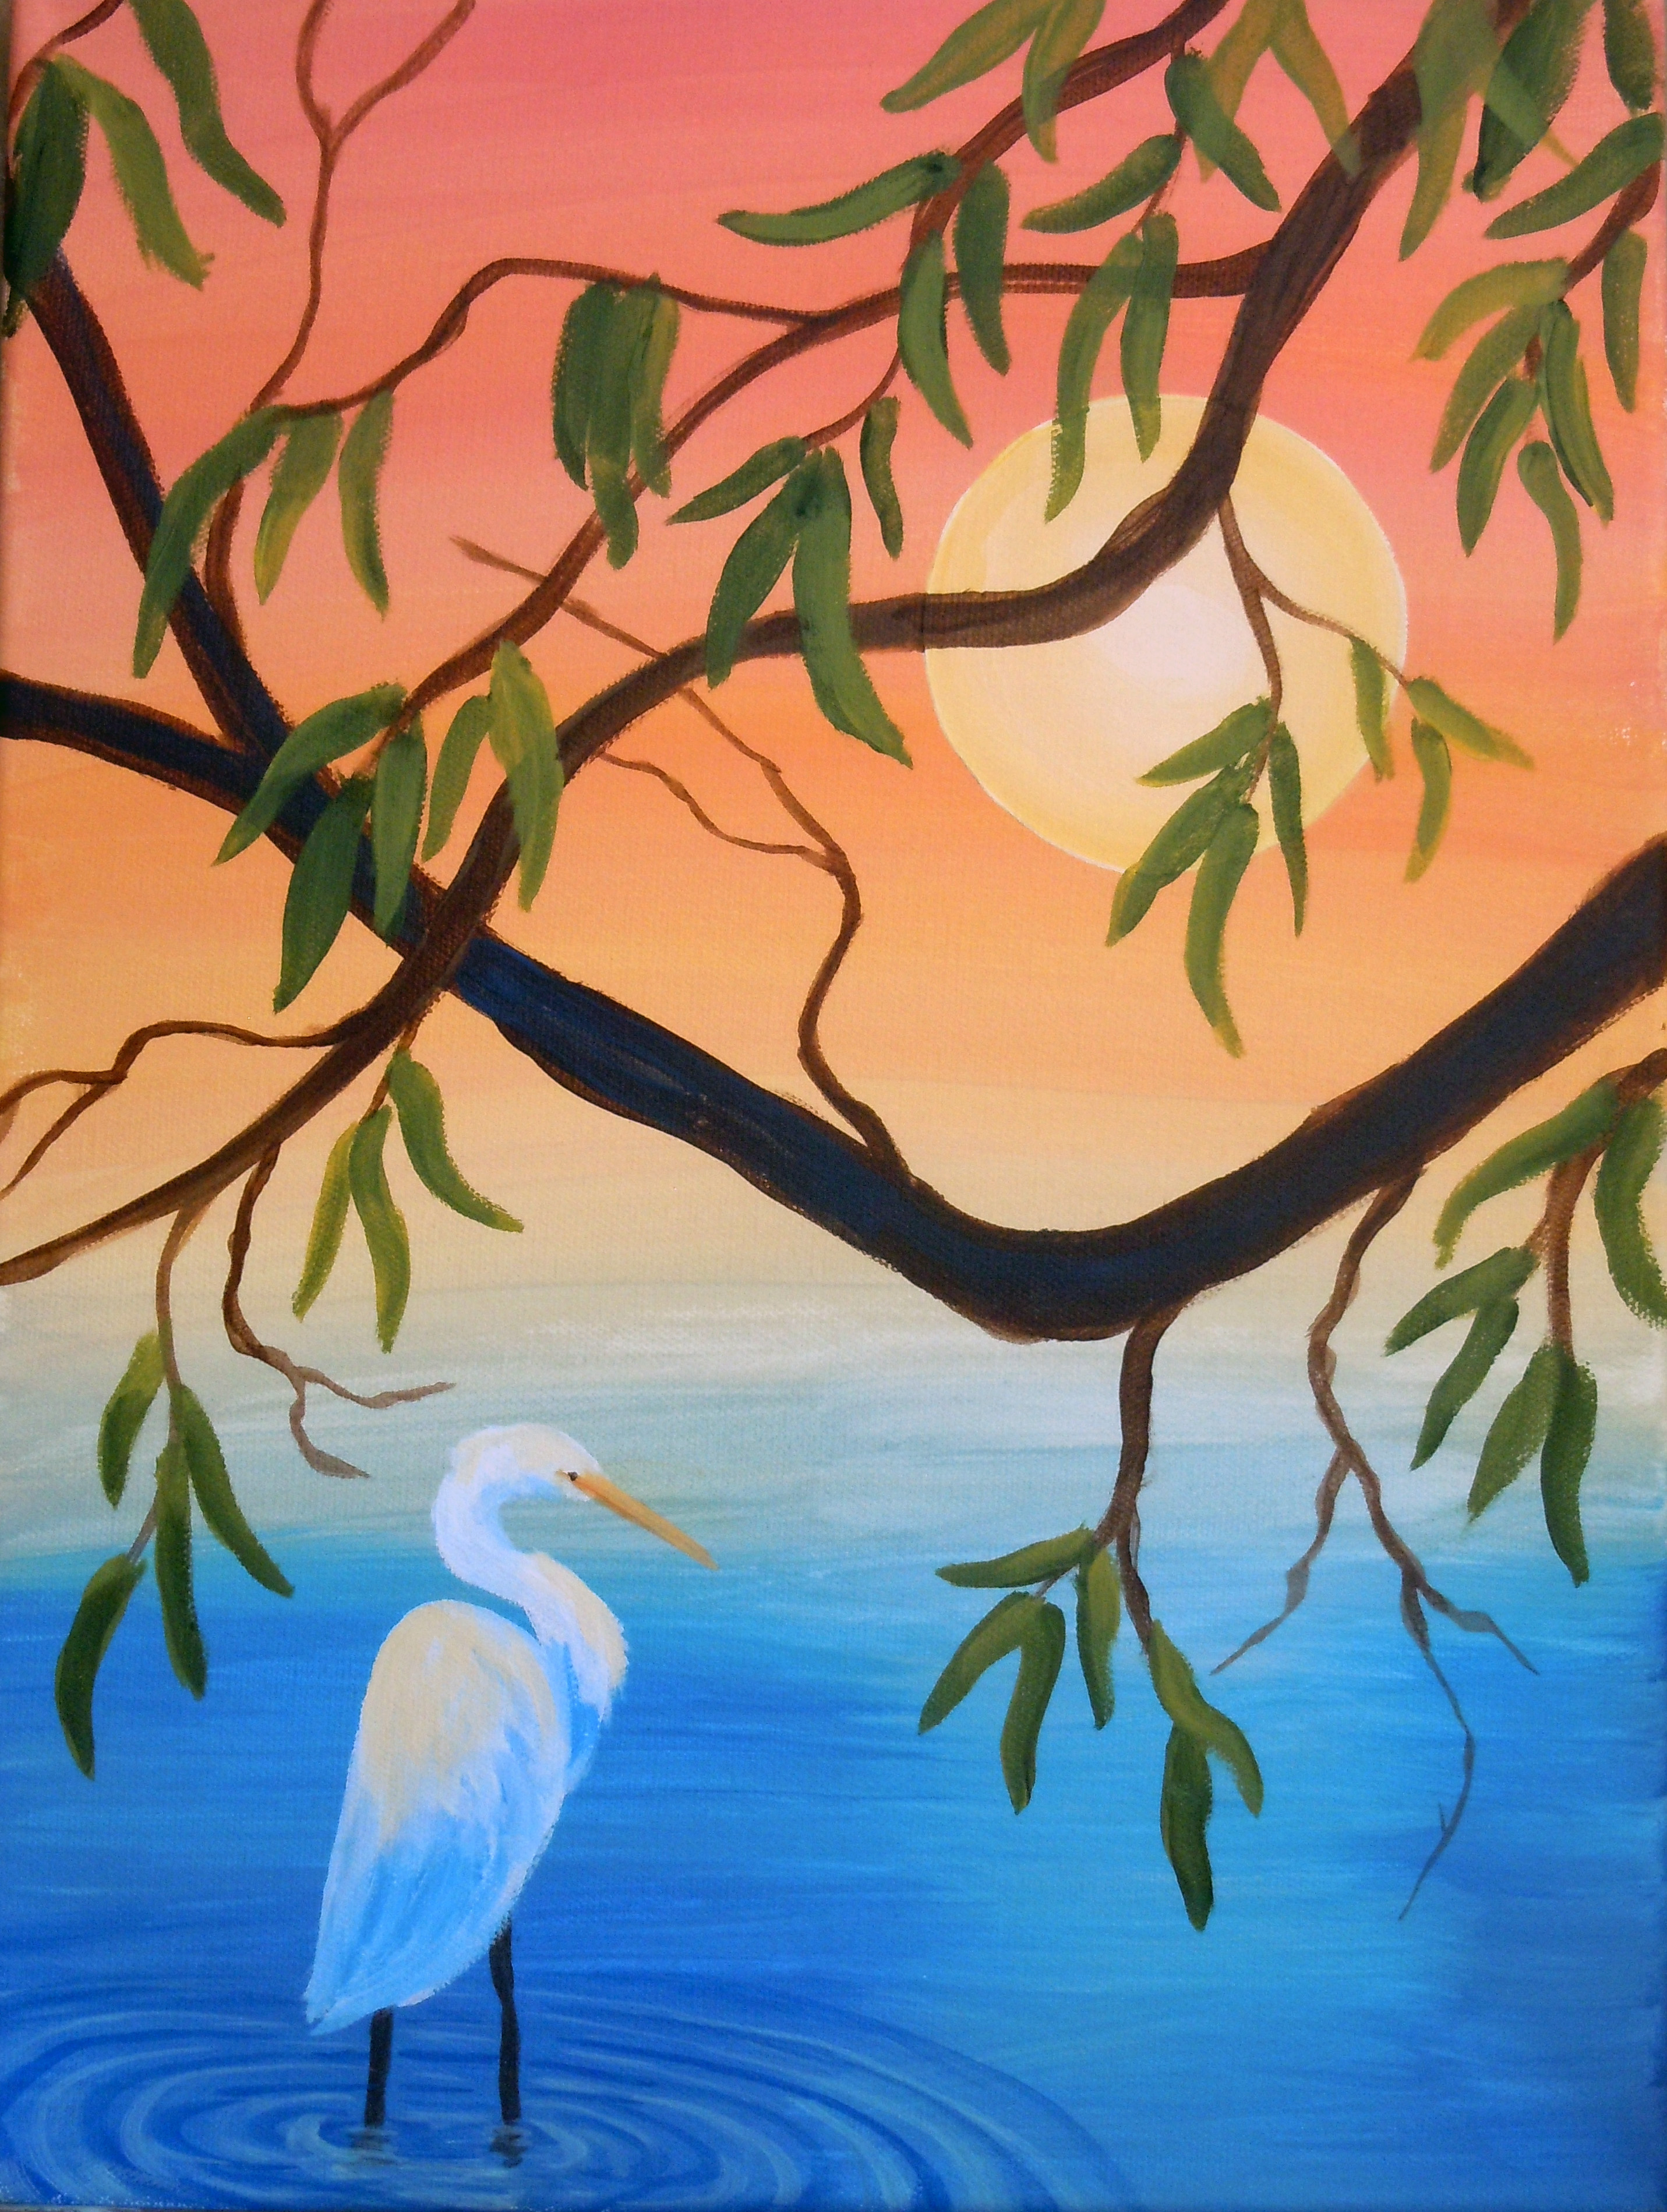 Egret/Heron with Tree